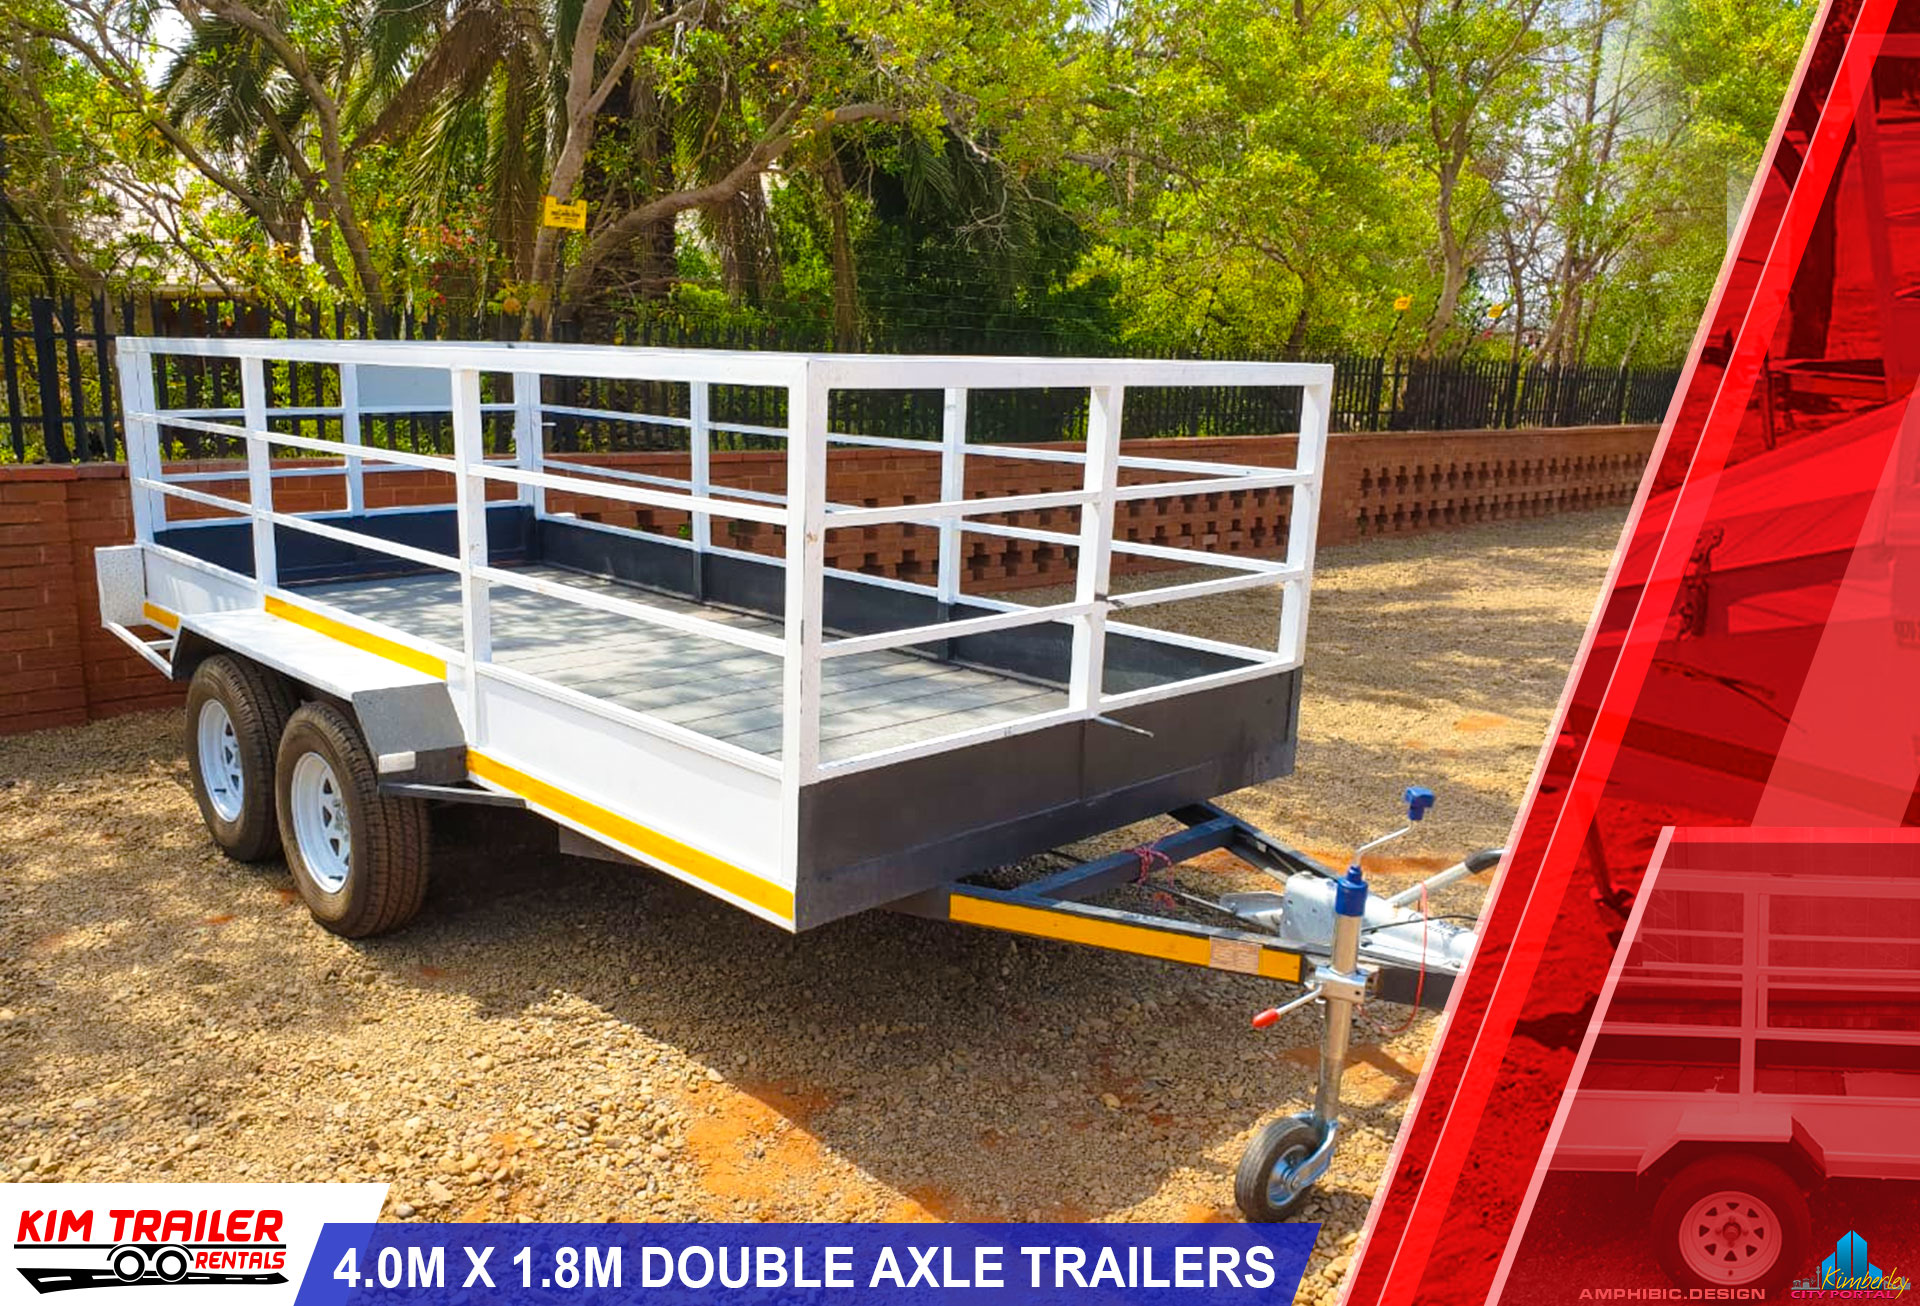 4.0m x 1.8m Double Axle Trailers